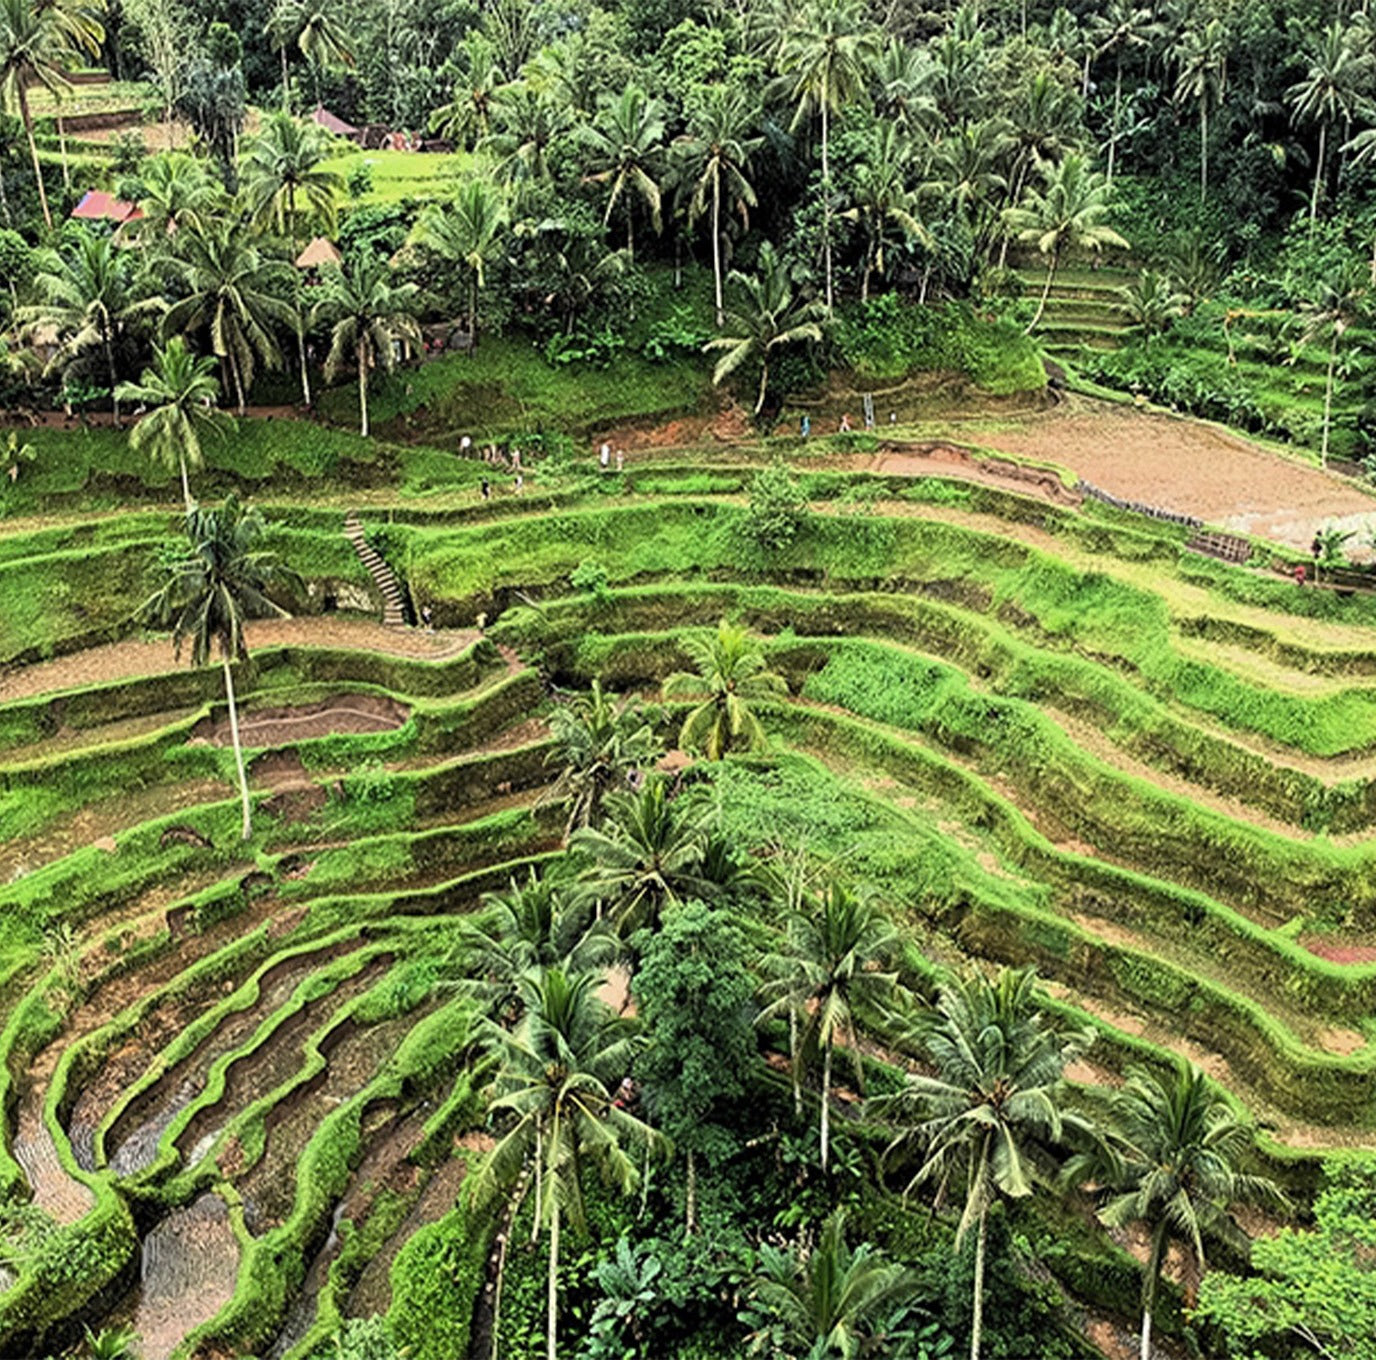 Destination: Ubud